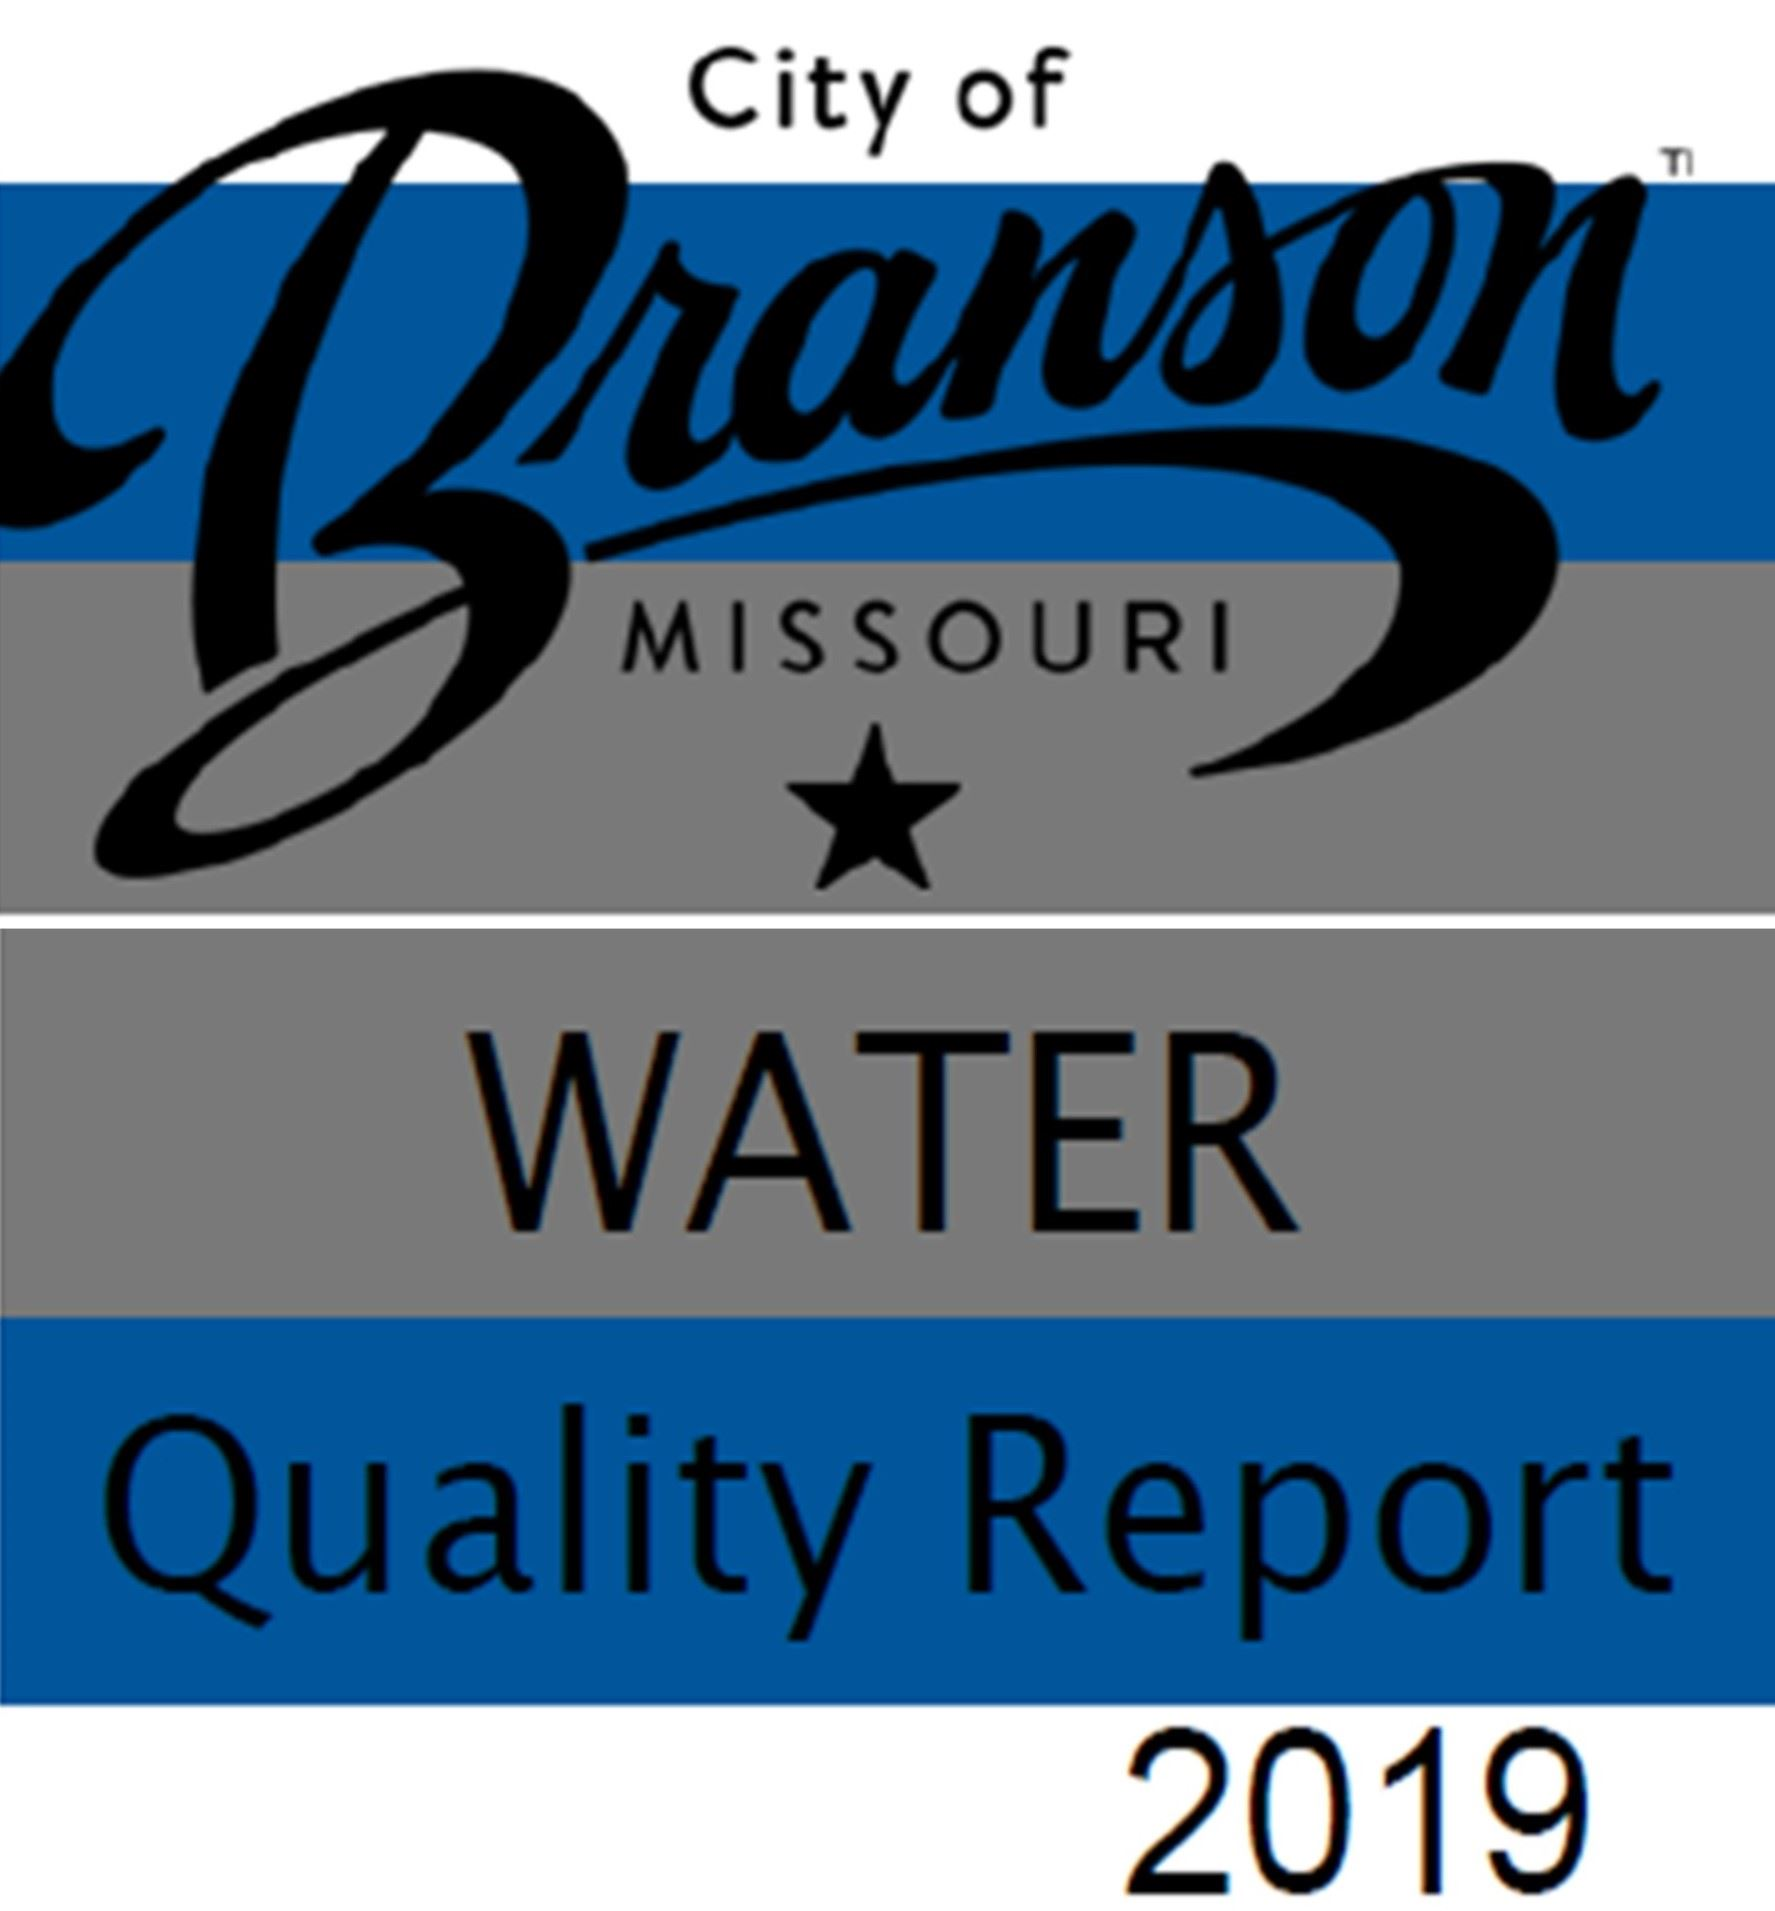 Utilities Water Quality report 2019